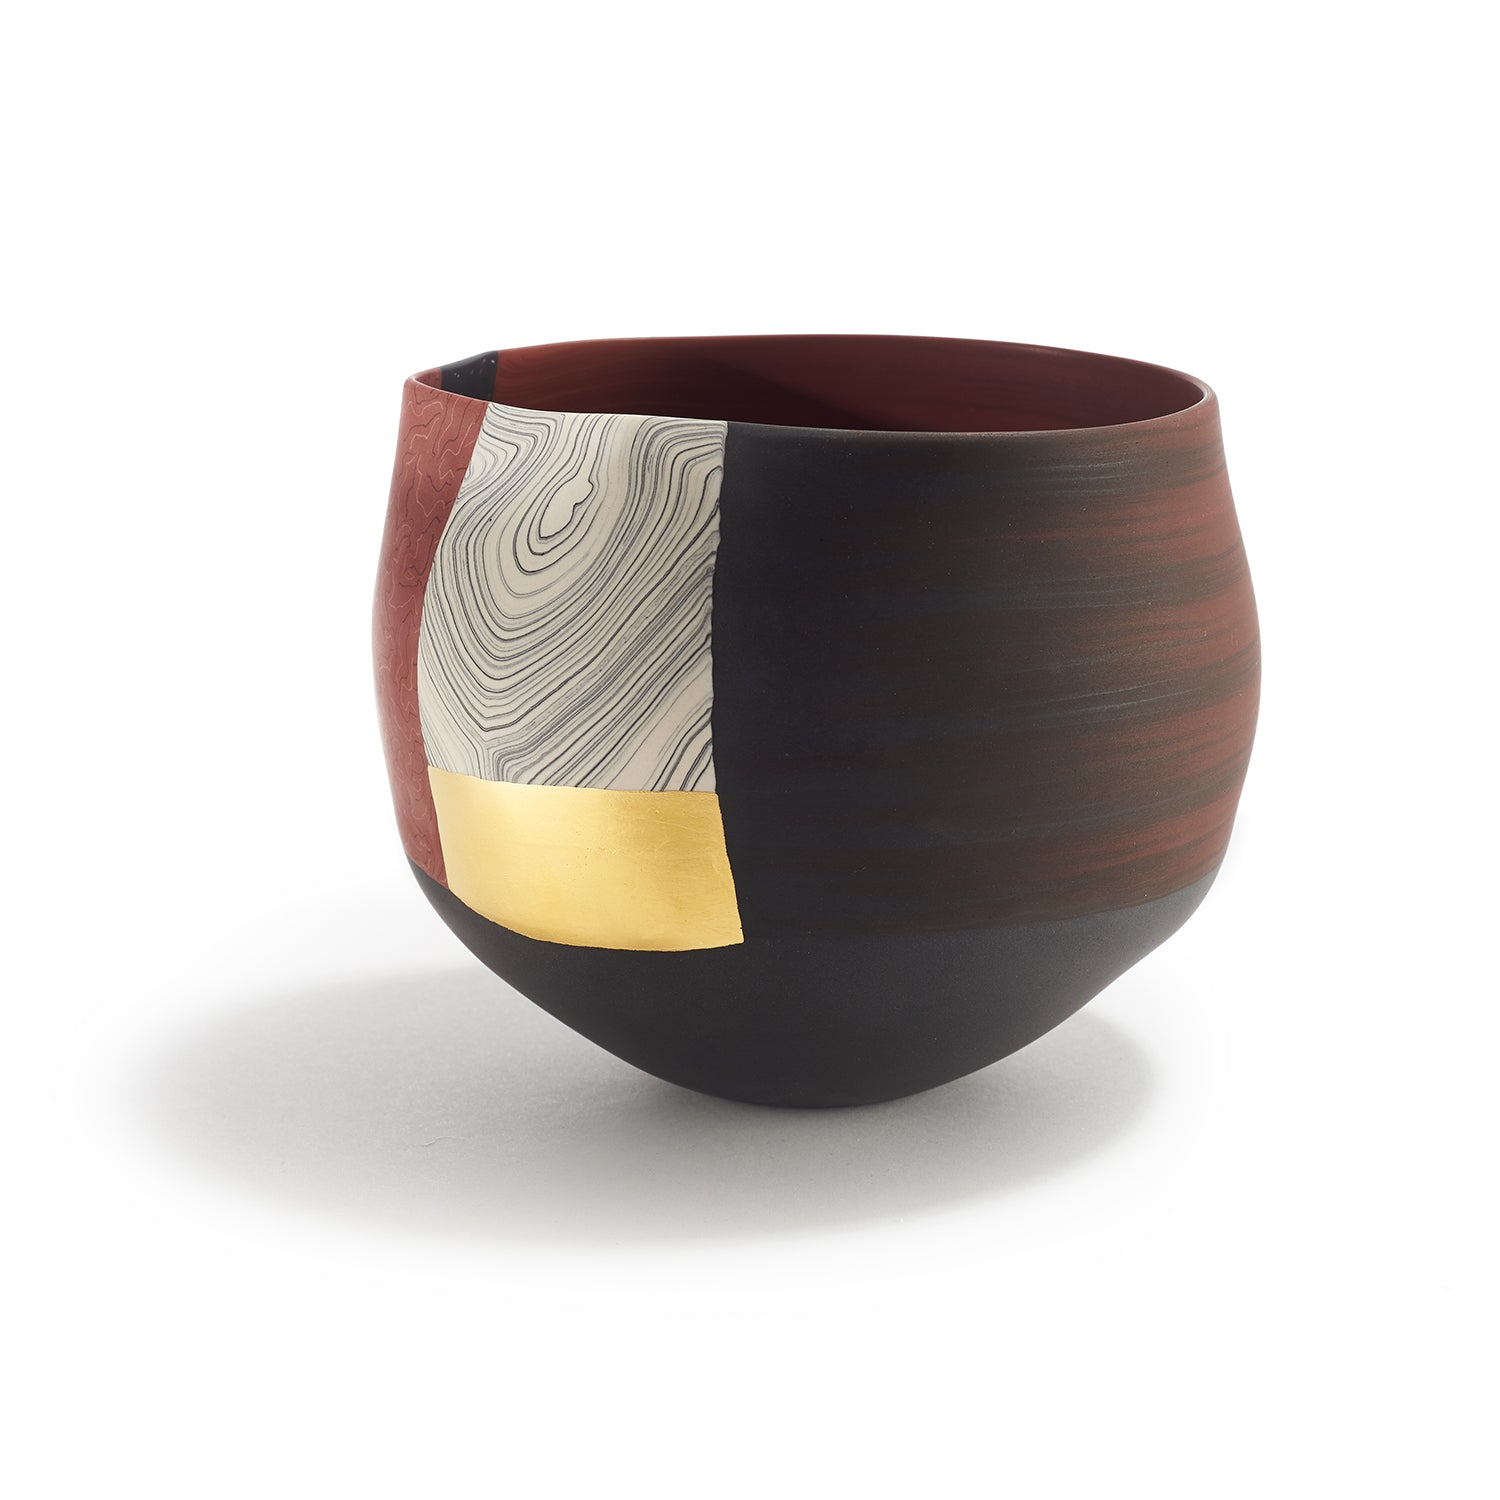 Small Red, Black & White Bowl with Gold Leaf